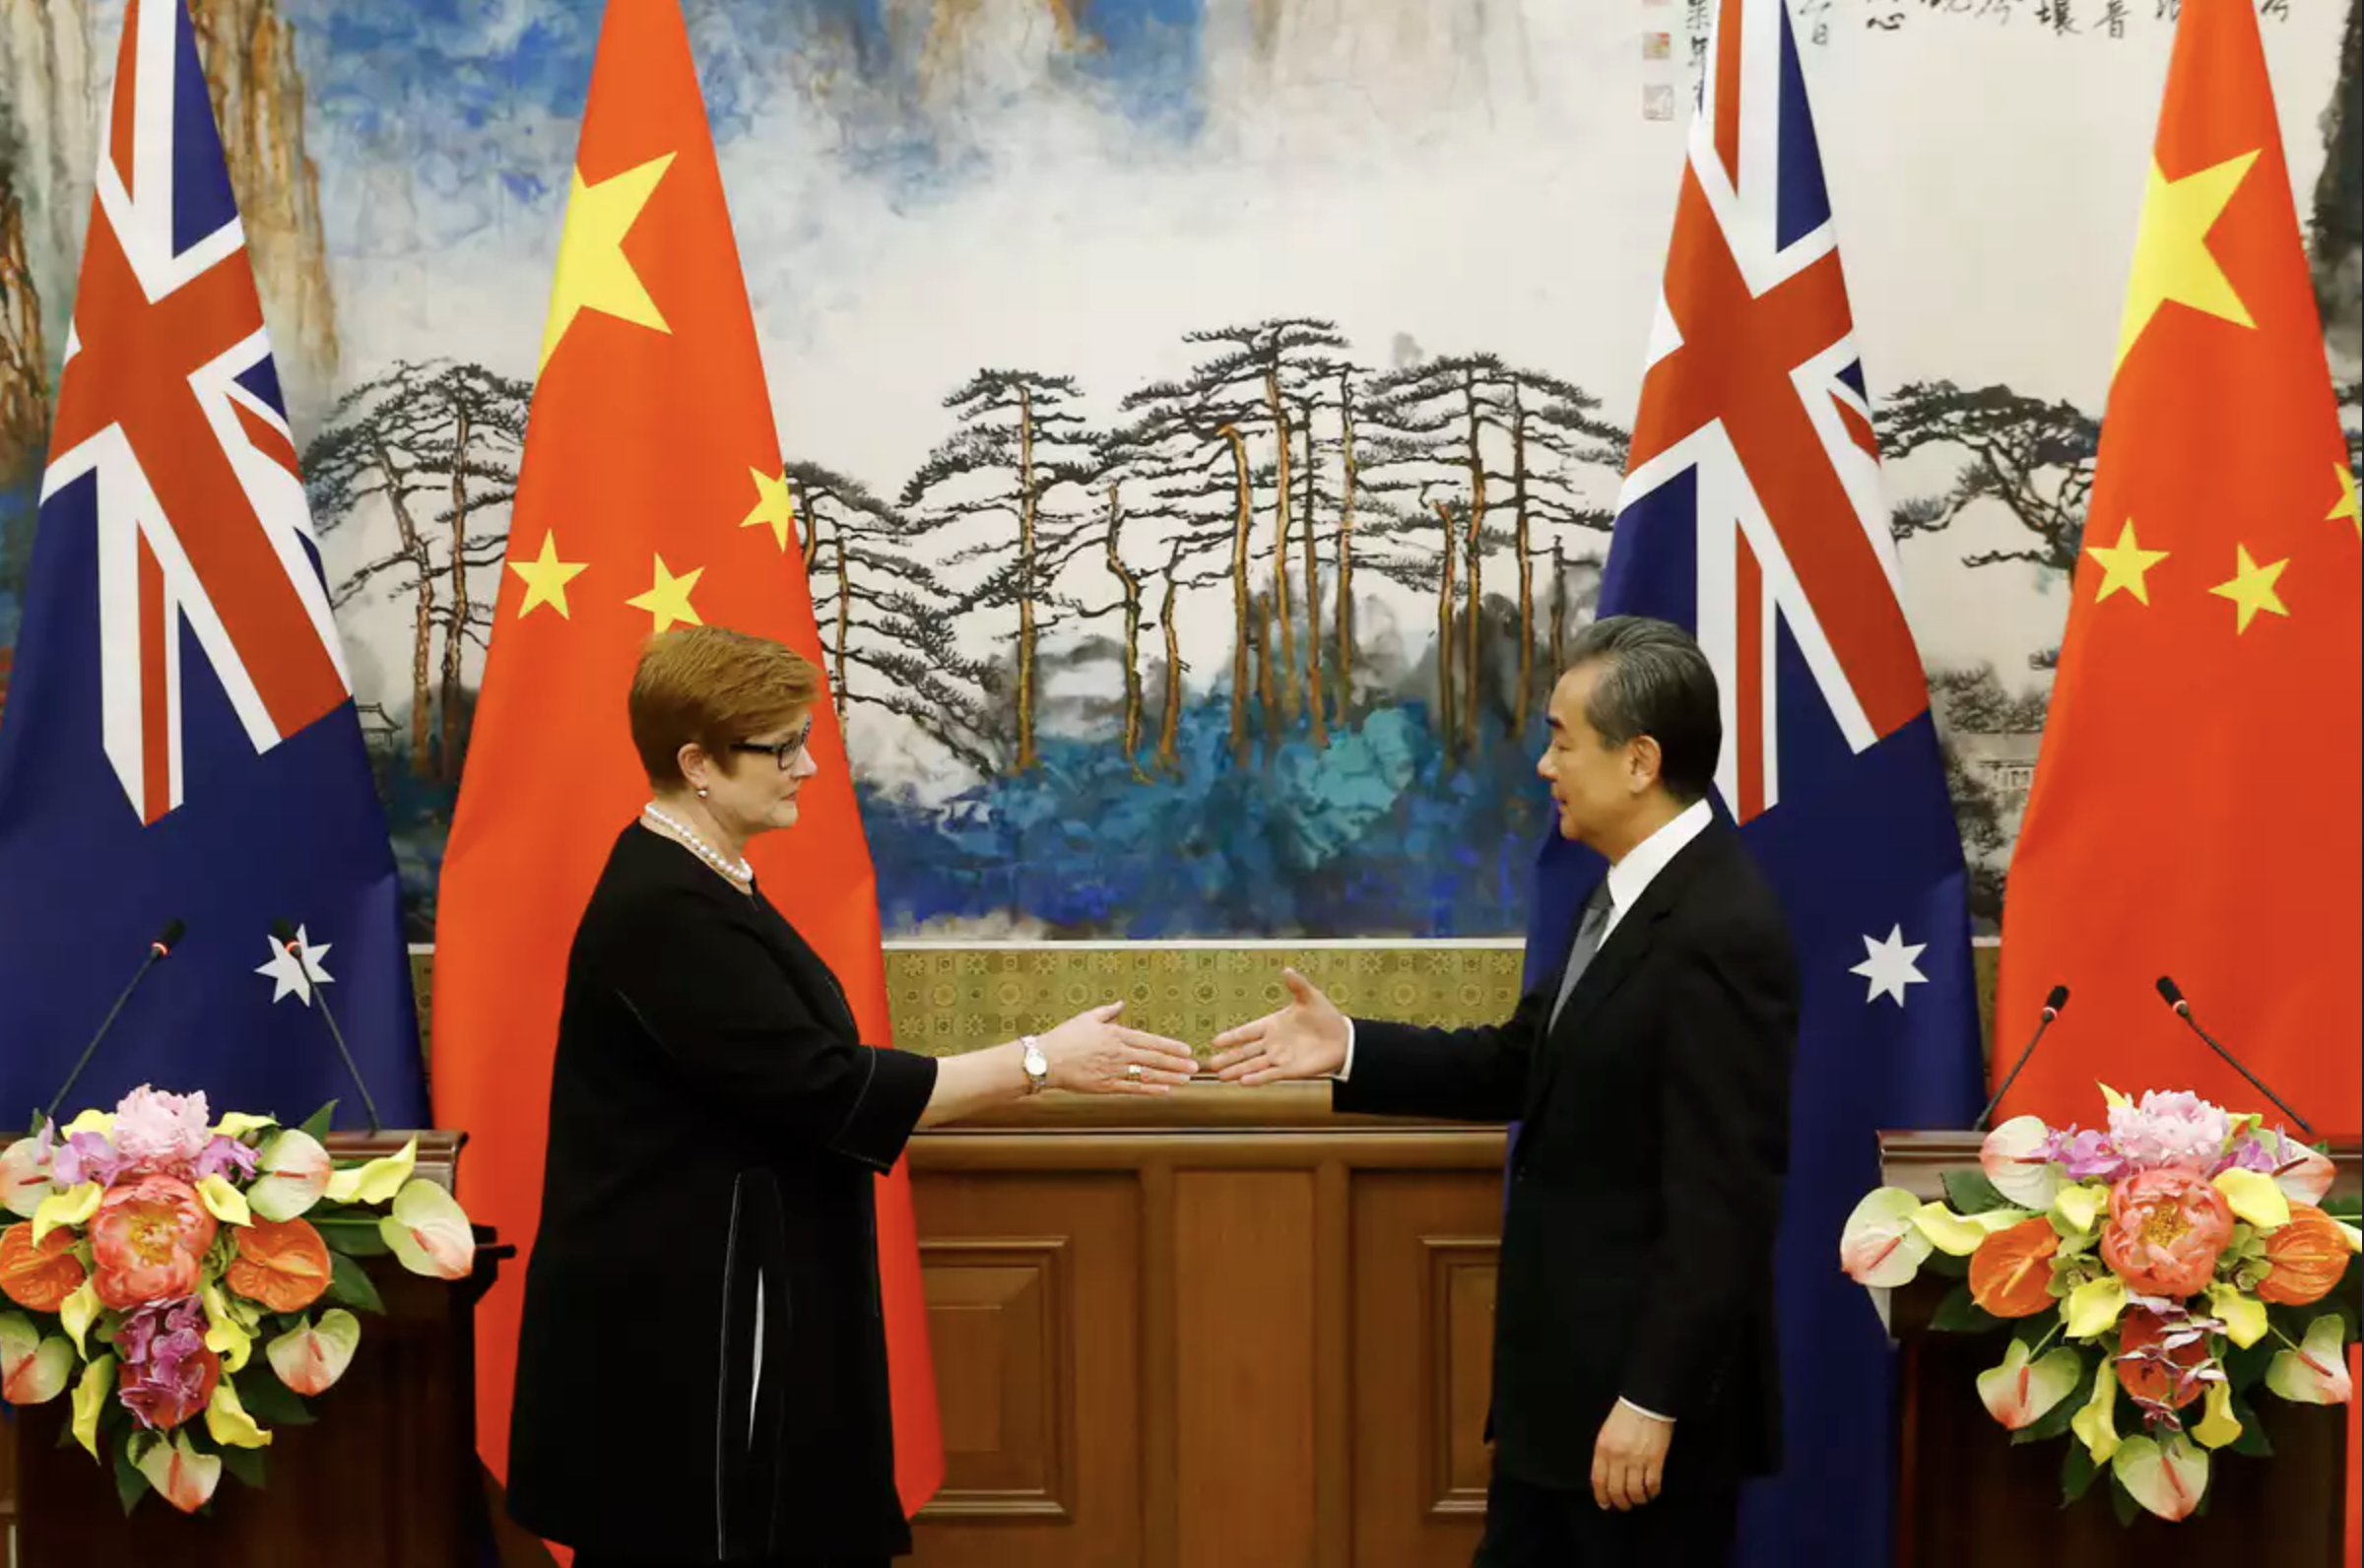 Foreign Minister Marise Payne meets Chinese Foreign Minister Wang Yi in Beijing in November 2018. AAP/EPA/Thomas Peter